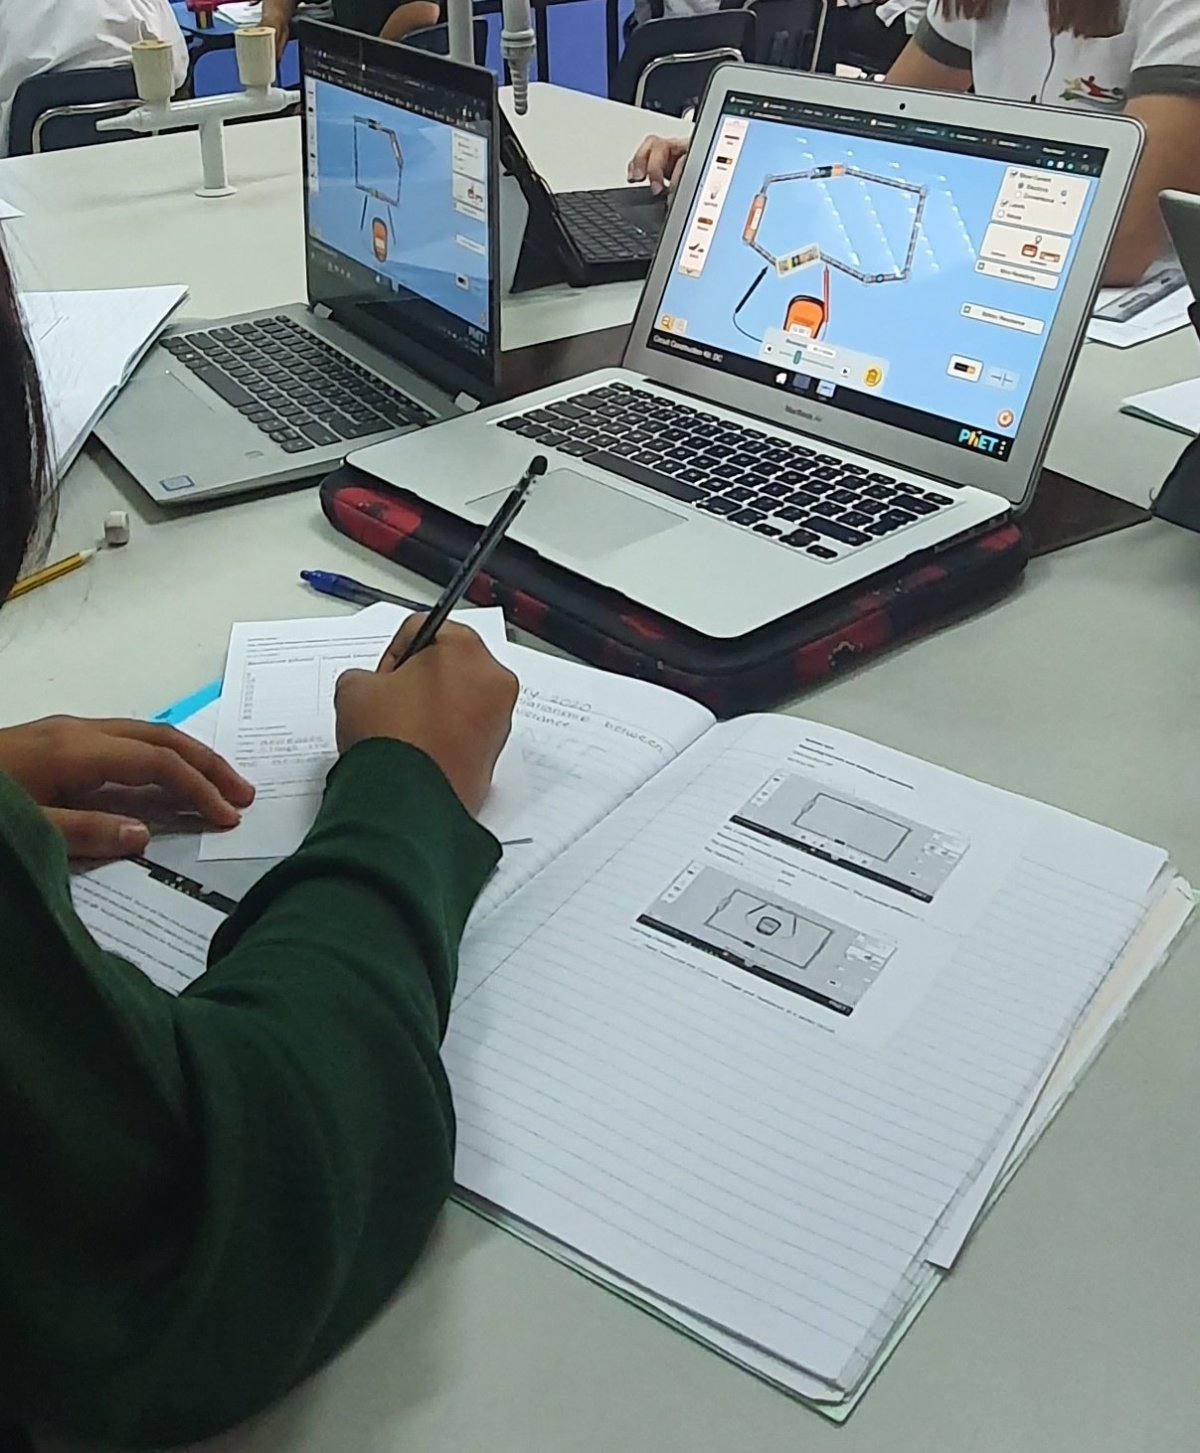 Students in class using devices to learn and writing in books